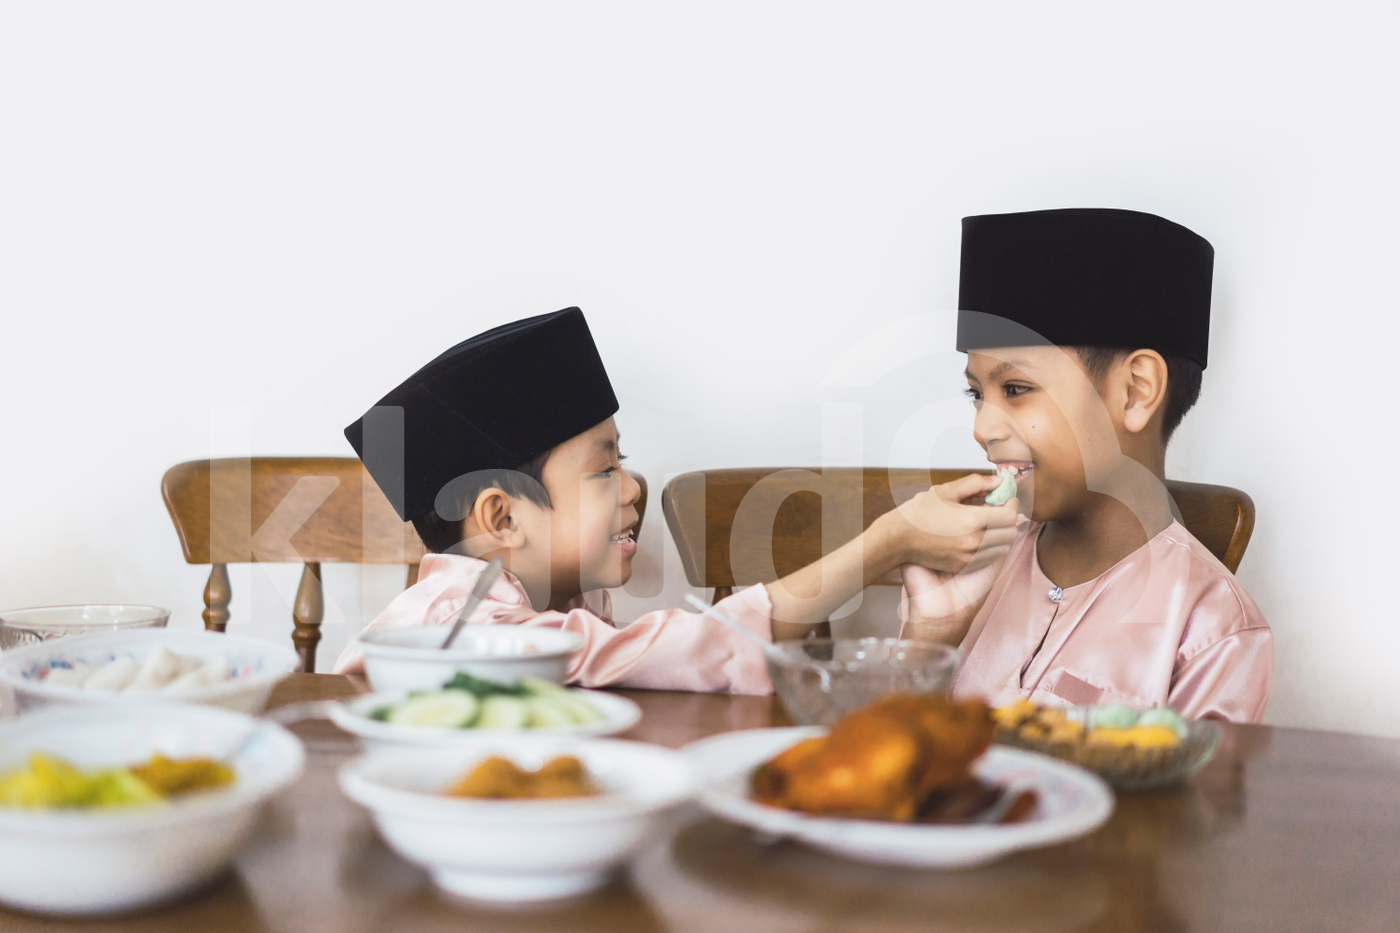 Muslim children feeding each other